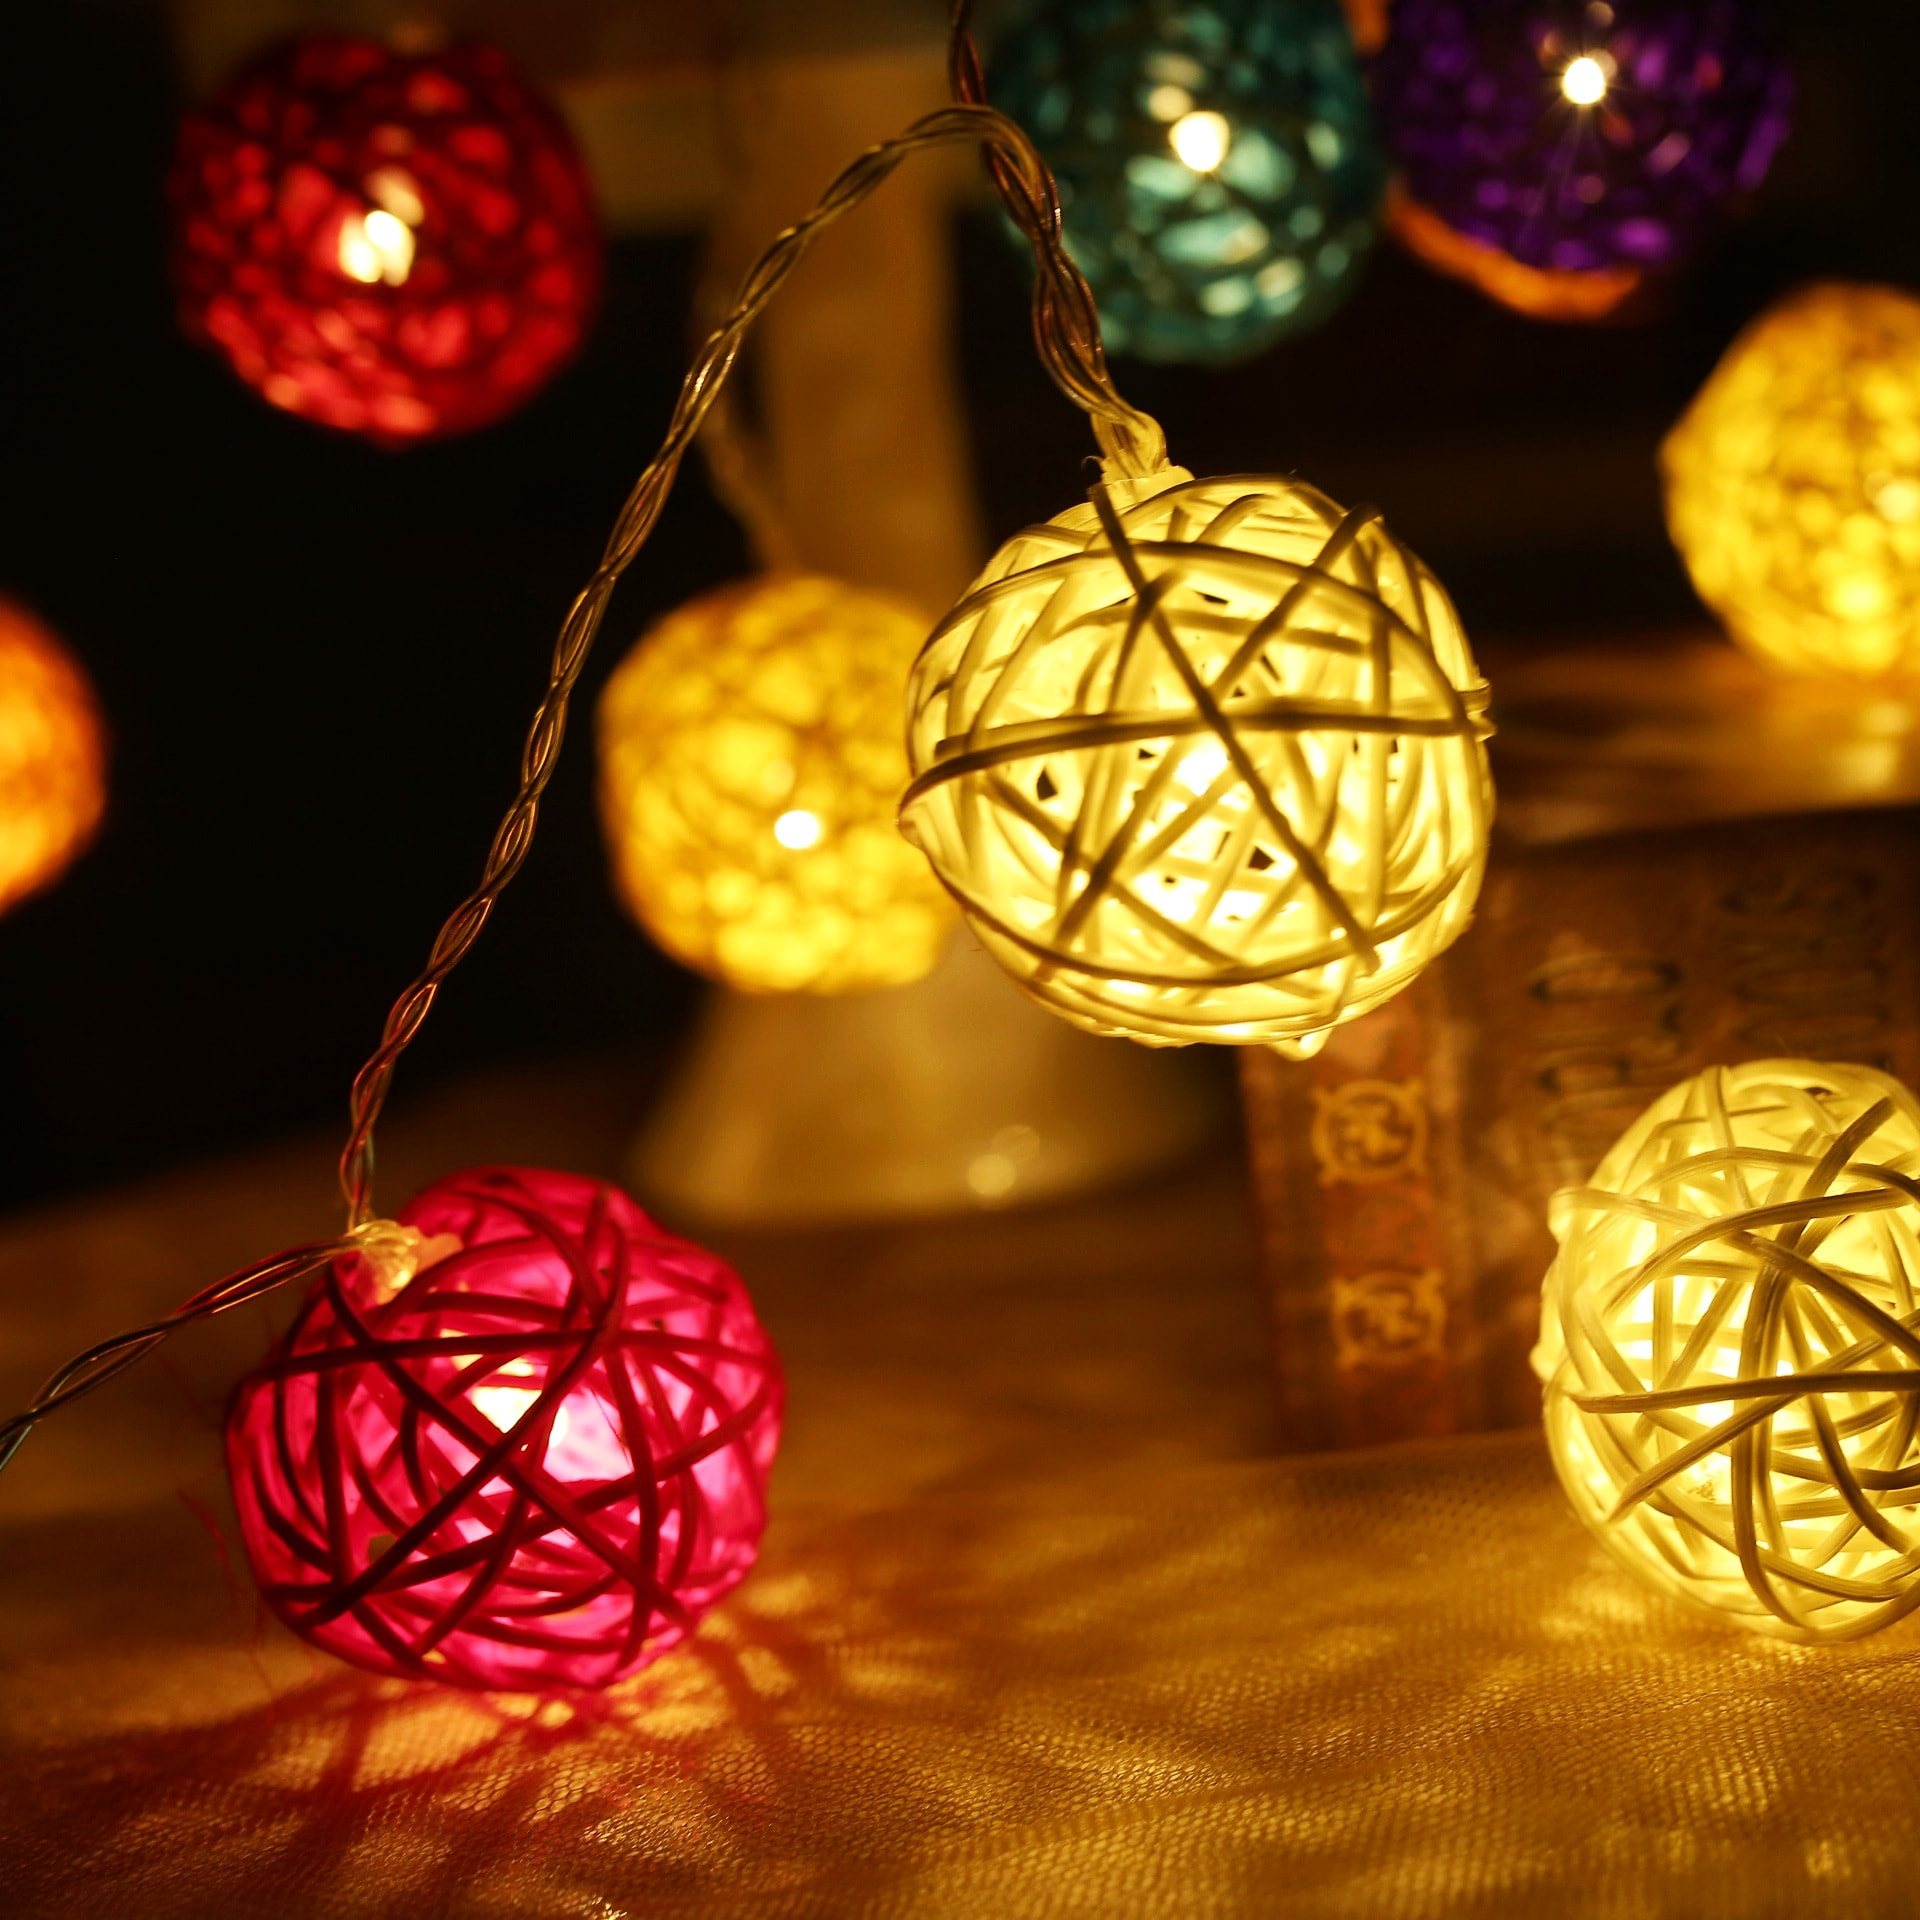 Decorative Stylish Ball LED Lights 5 Meters 16 Feet 20 Lights